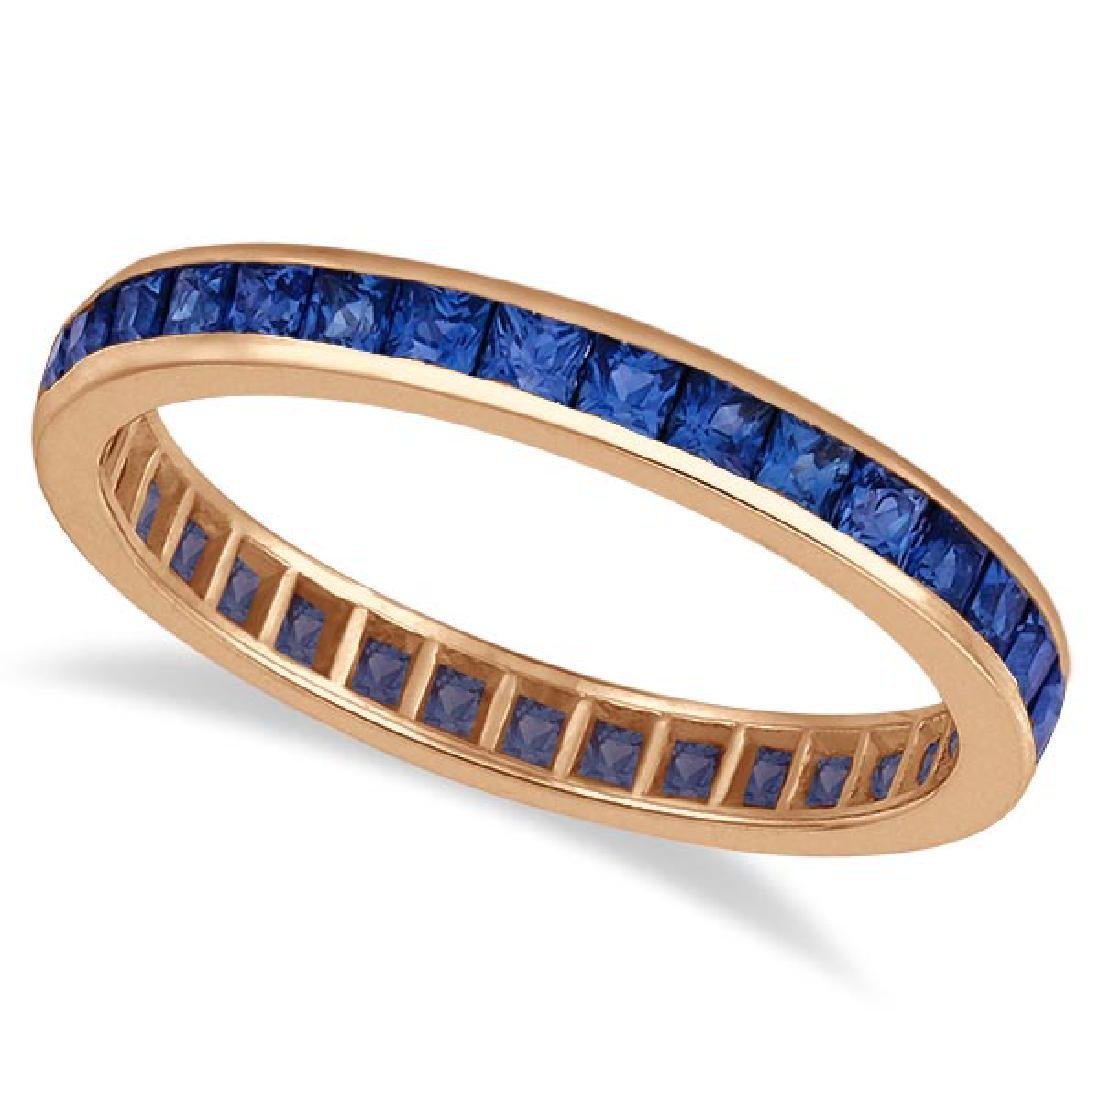 Princess-Cut Blue Sapphire Eternity Ring Band 14k Rose